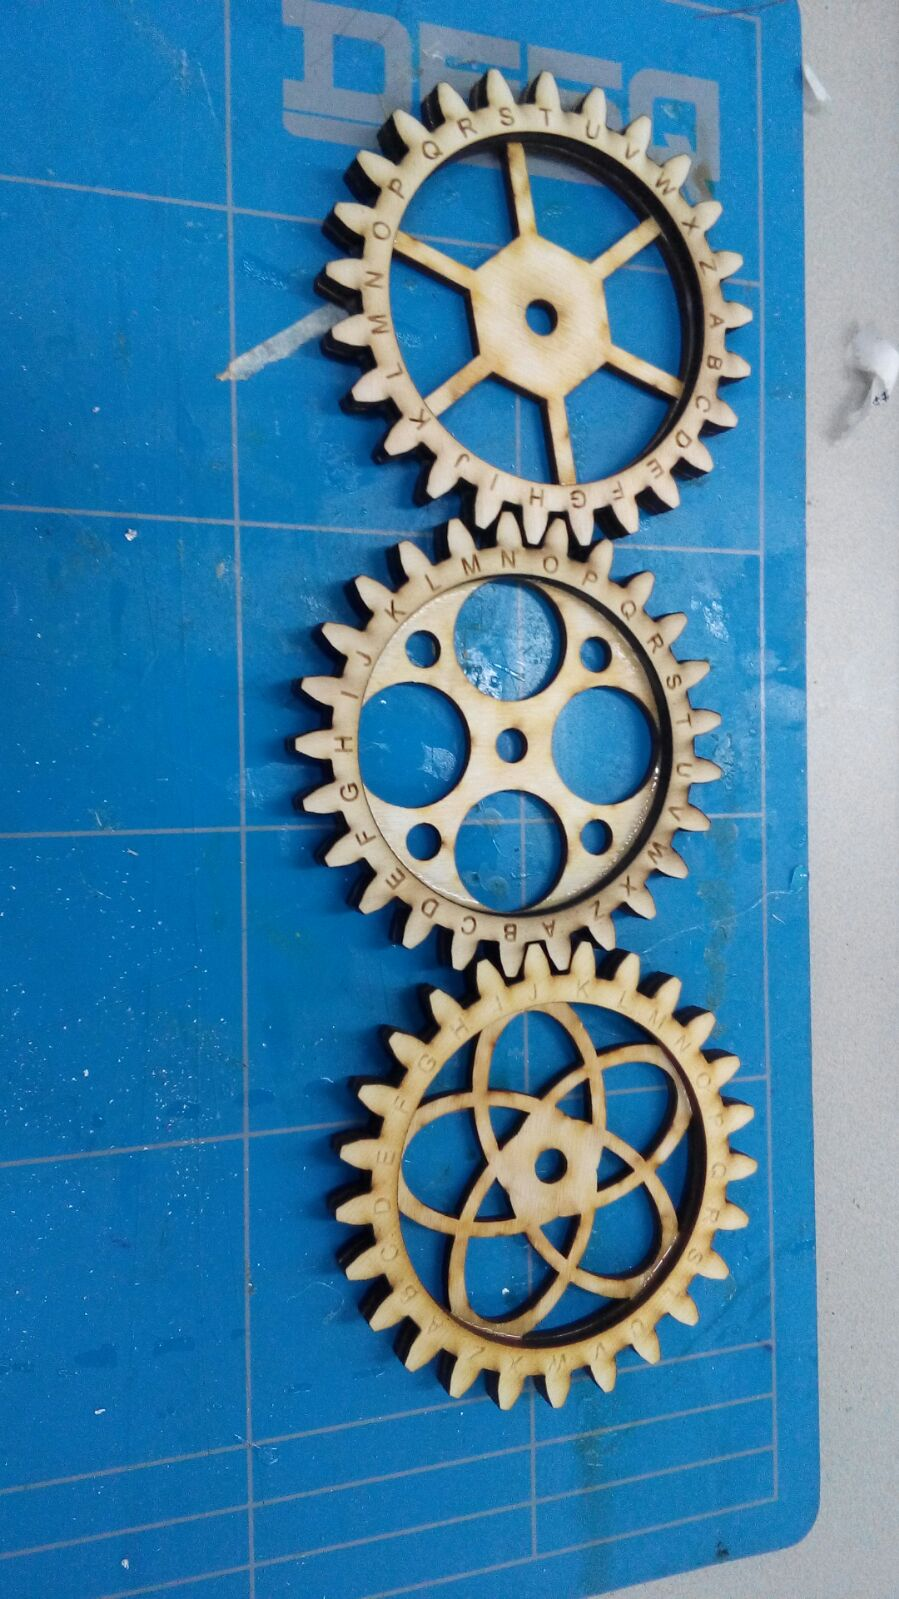 The Inner Small Gears